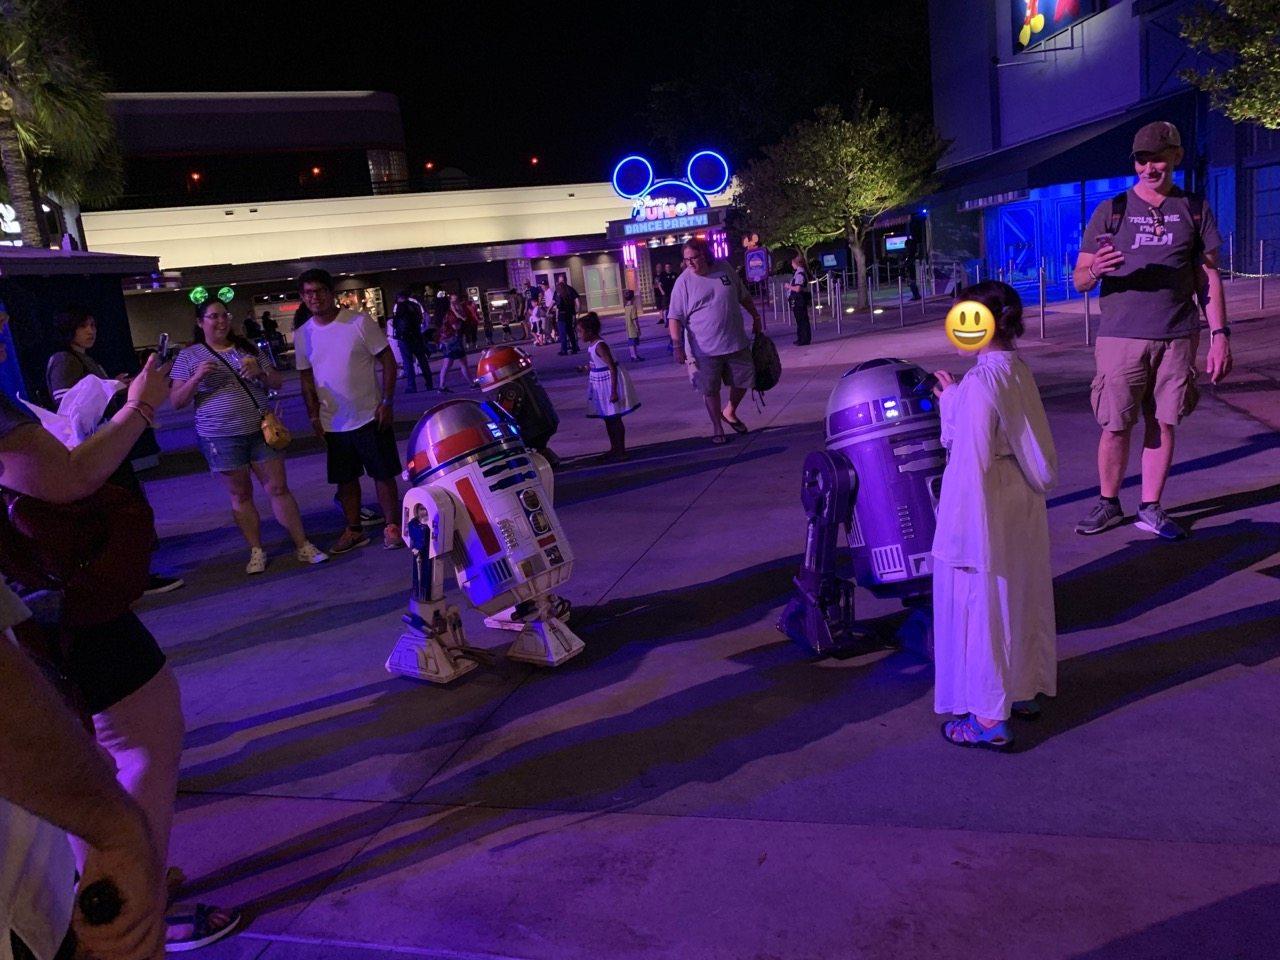 disney world hollywood studios after hours review 37 droids.jpeg